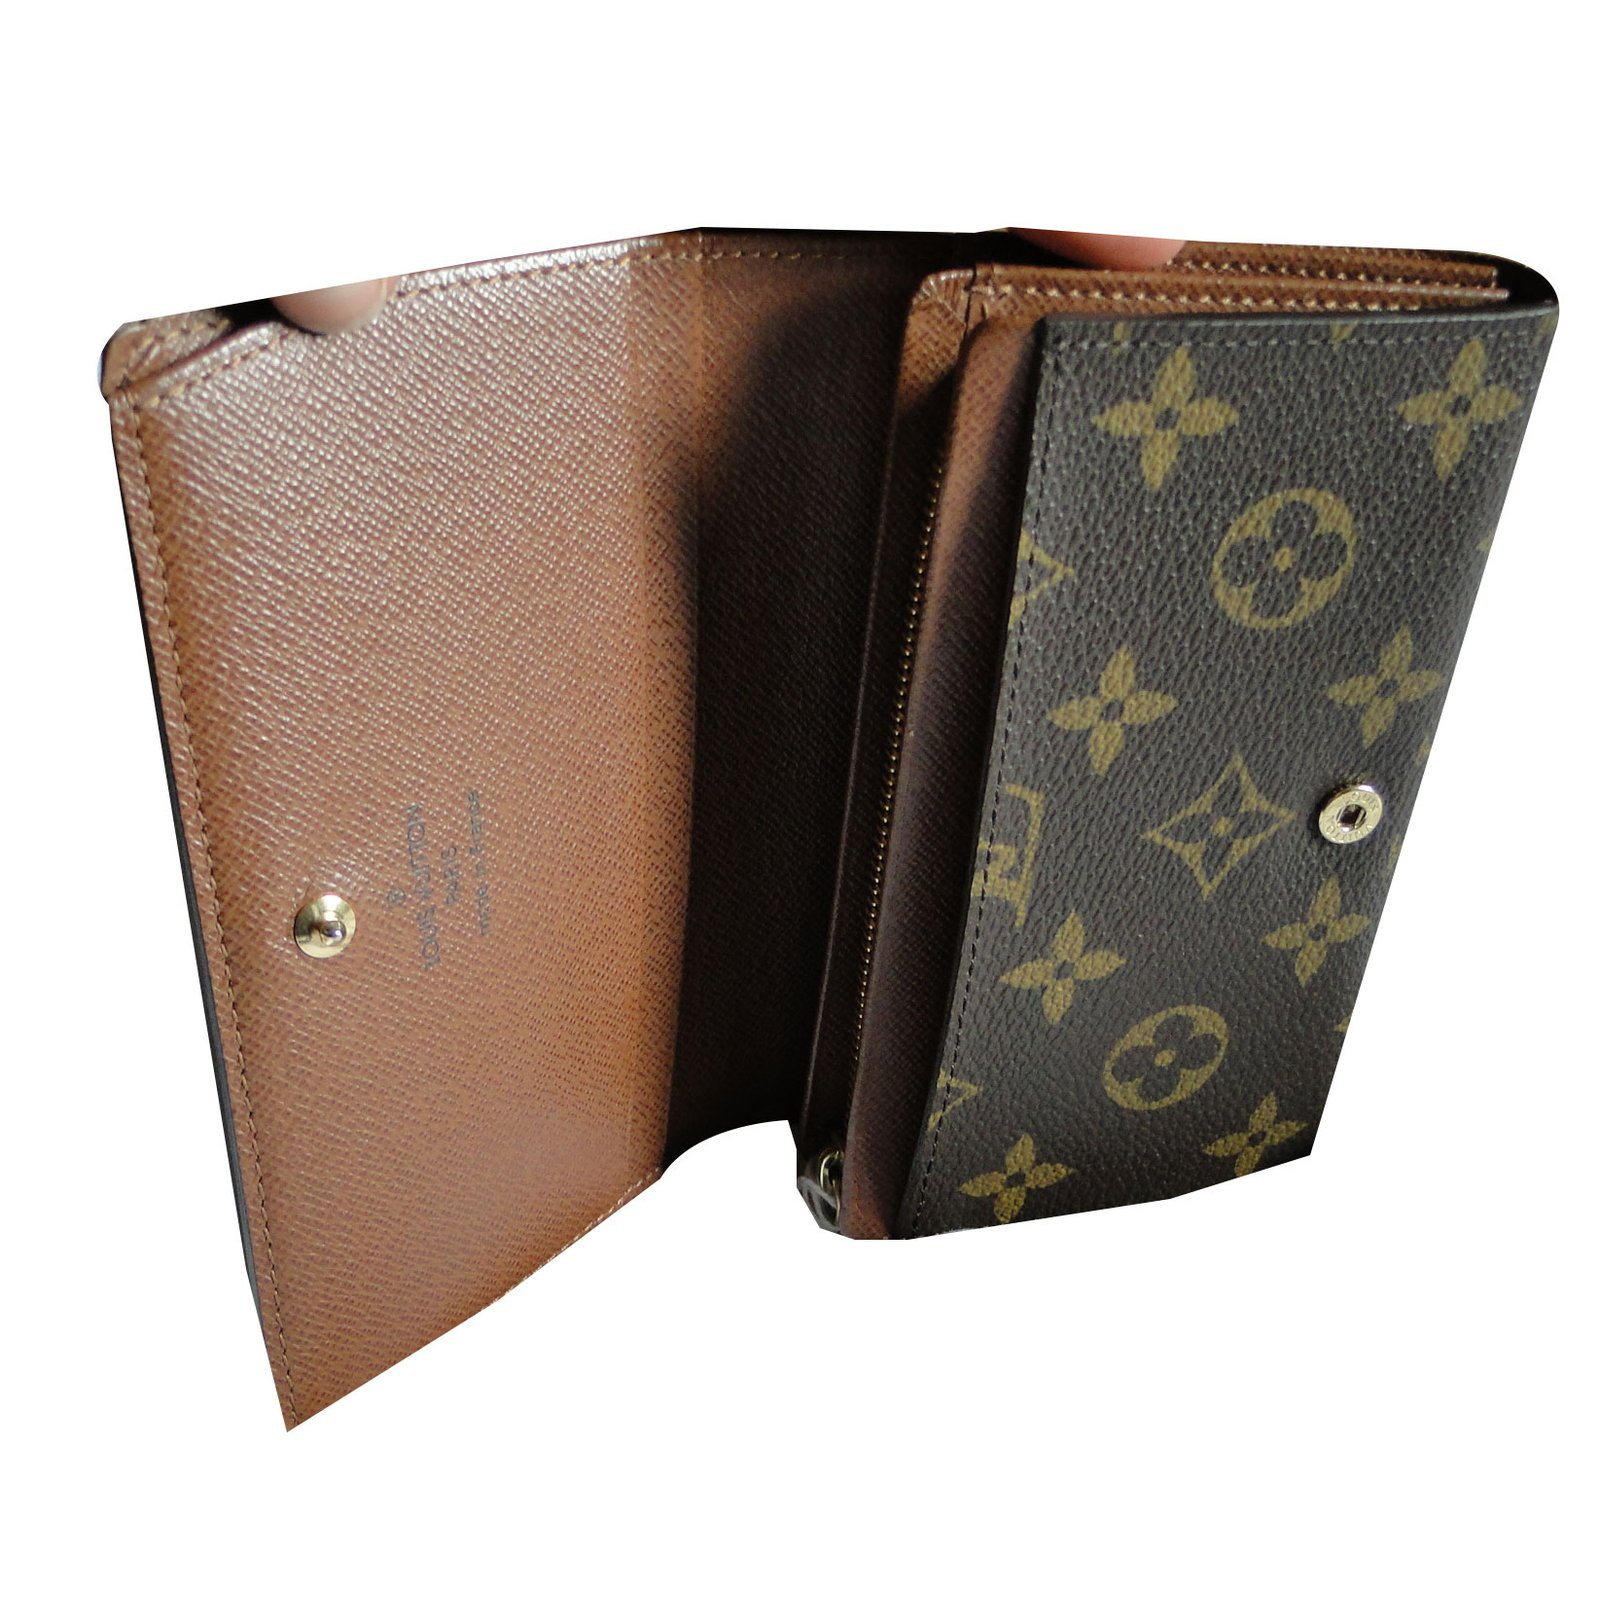 c4a14936b60 Louis Vuitton Wallets Small accessories Wallets Small accessories Leather